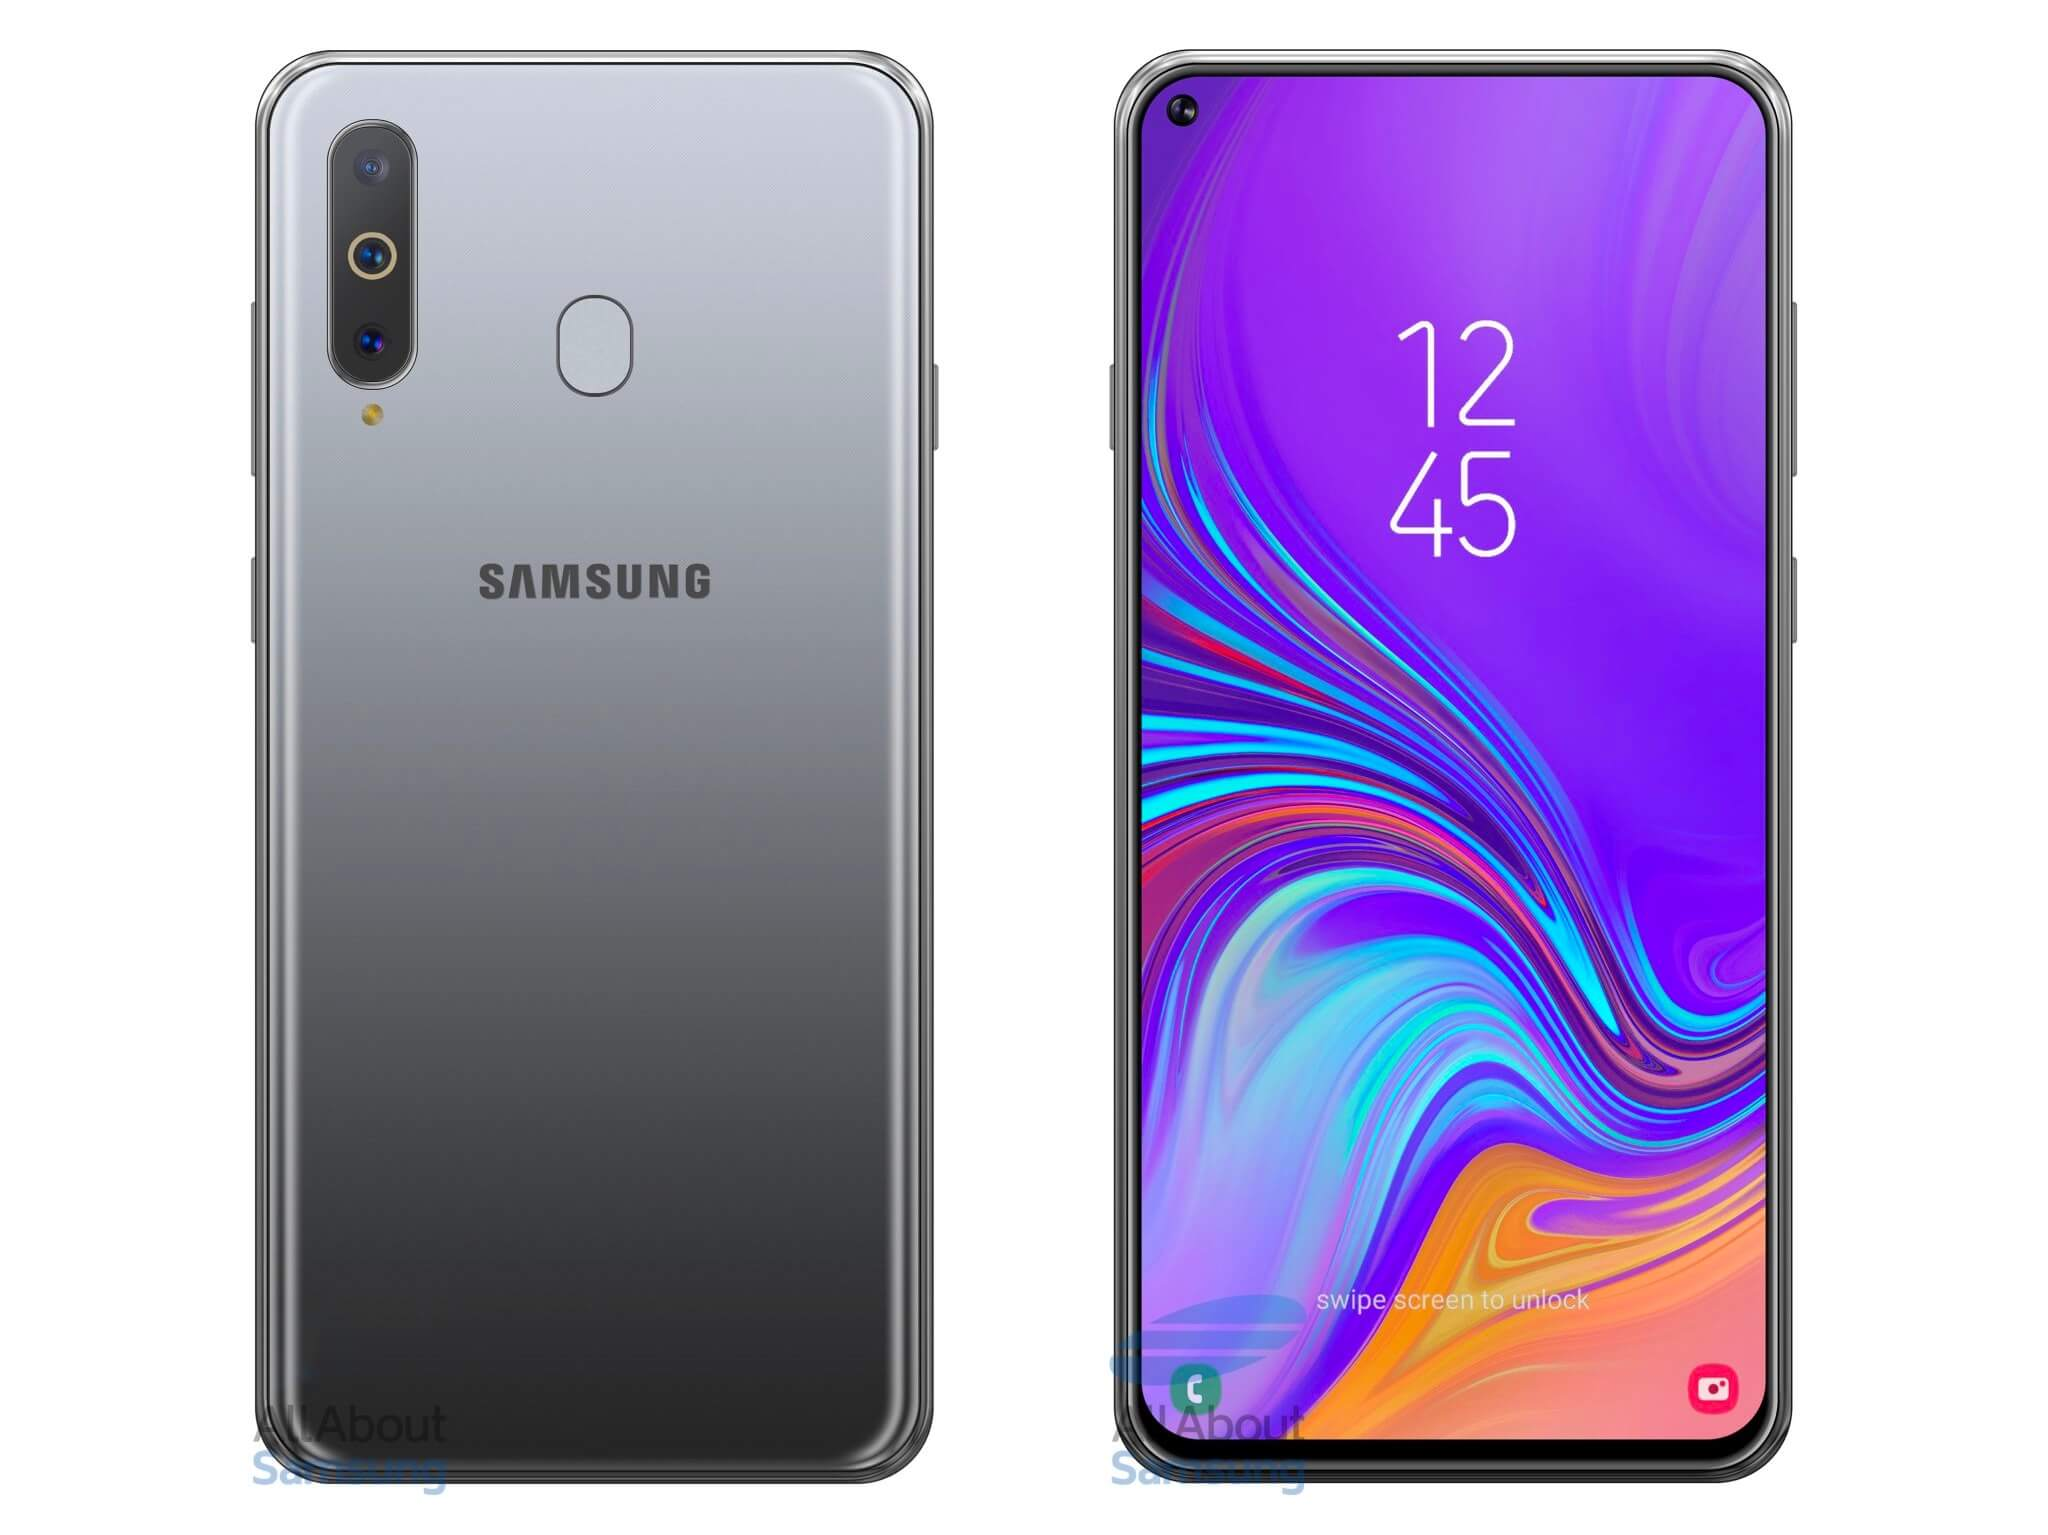 Samsung Galaxy A8s announced: Price, specifications, features and more